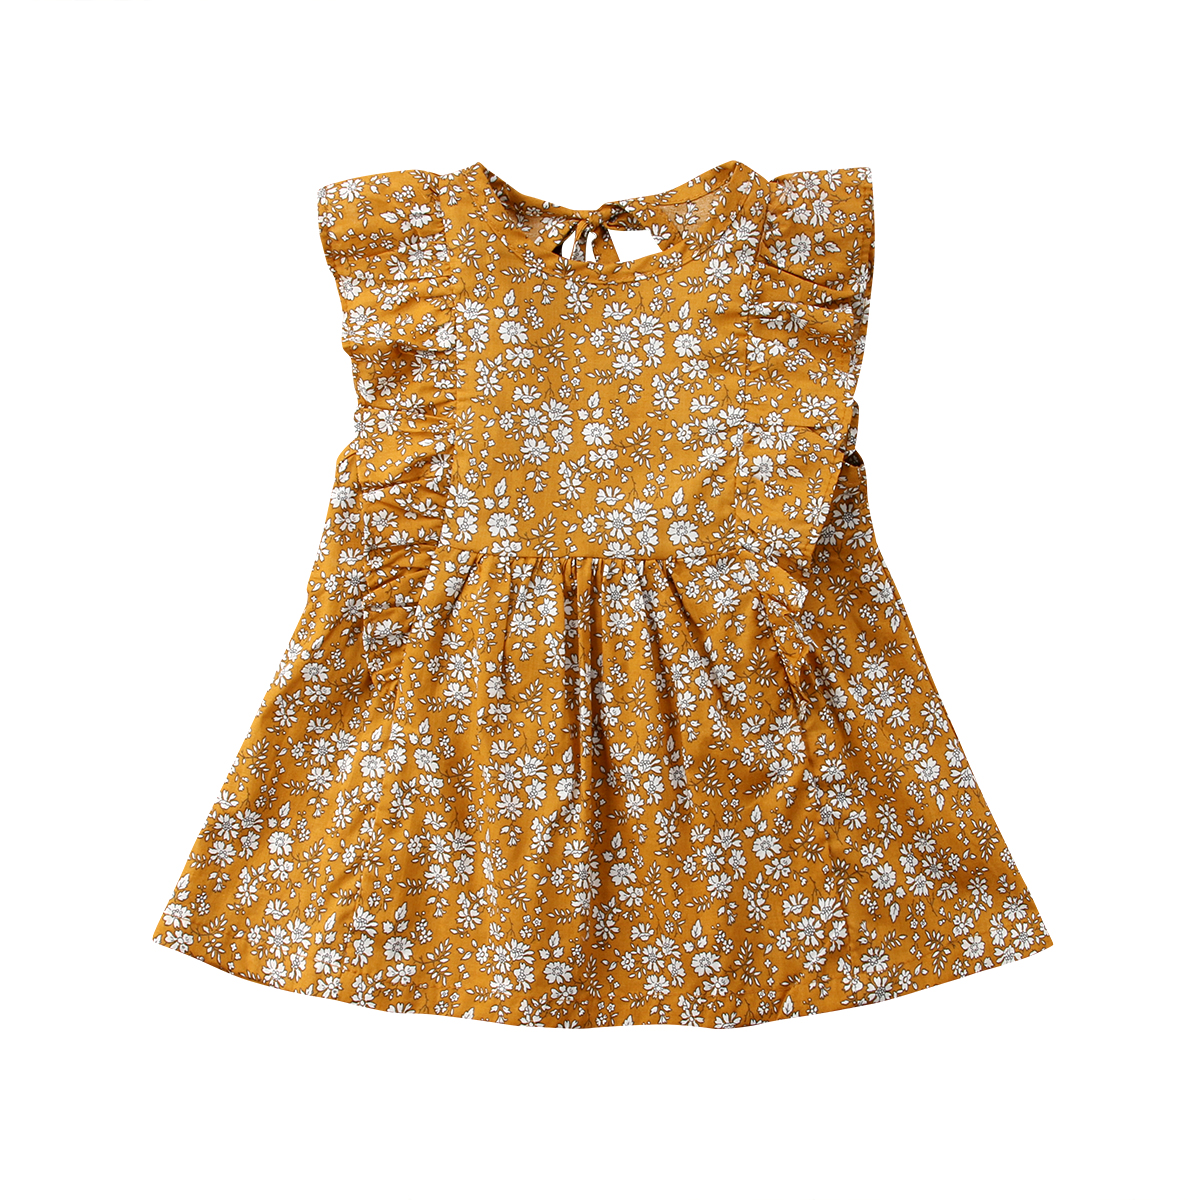 Toddler Kids Baby Girl Vintage TOP SALE Fashion Style Short Sleeve Ruffles Floral Dresses Summer 0-4Y